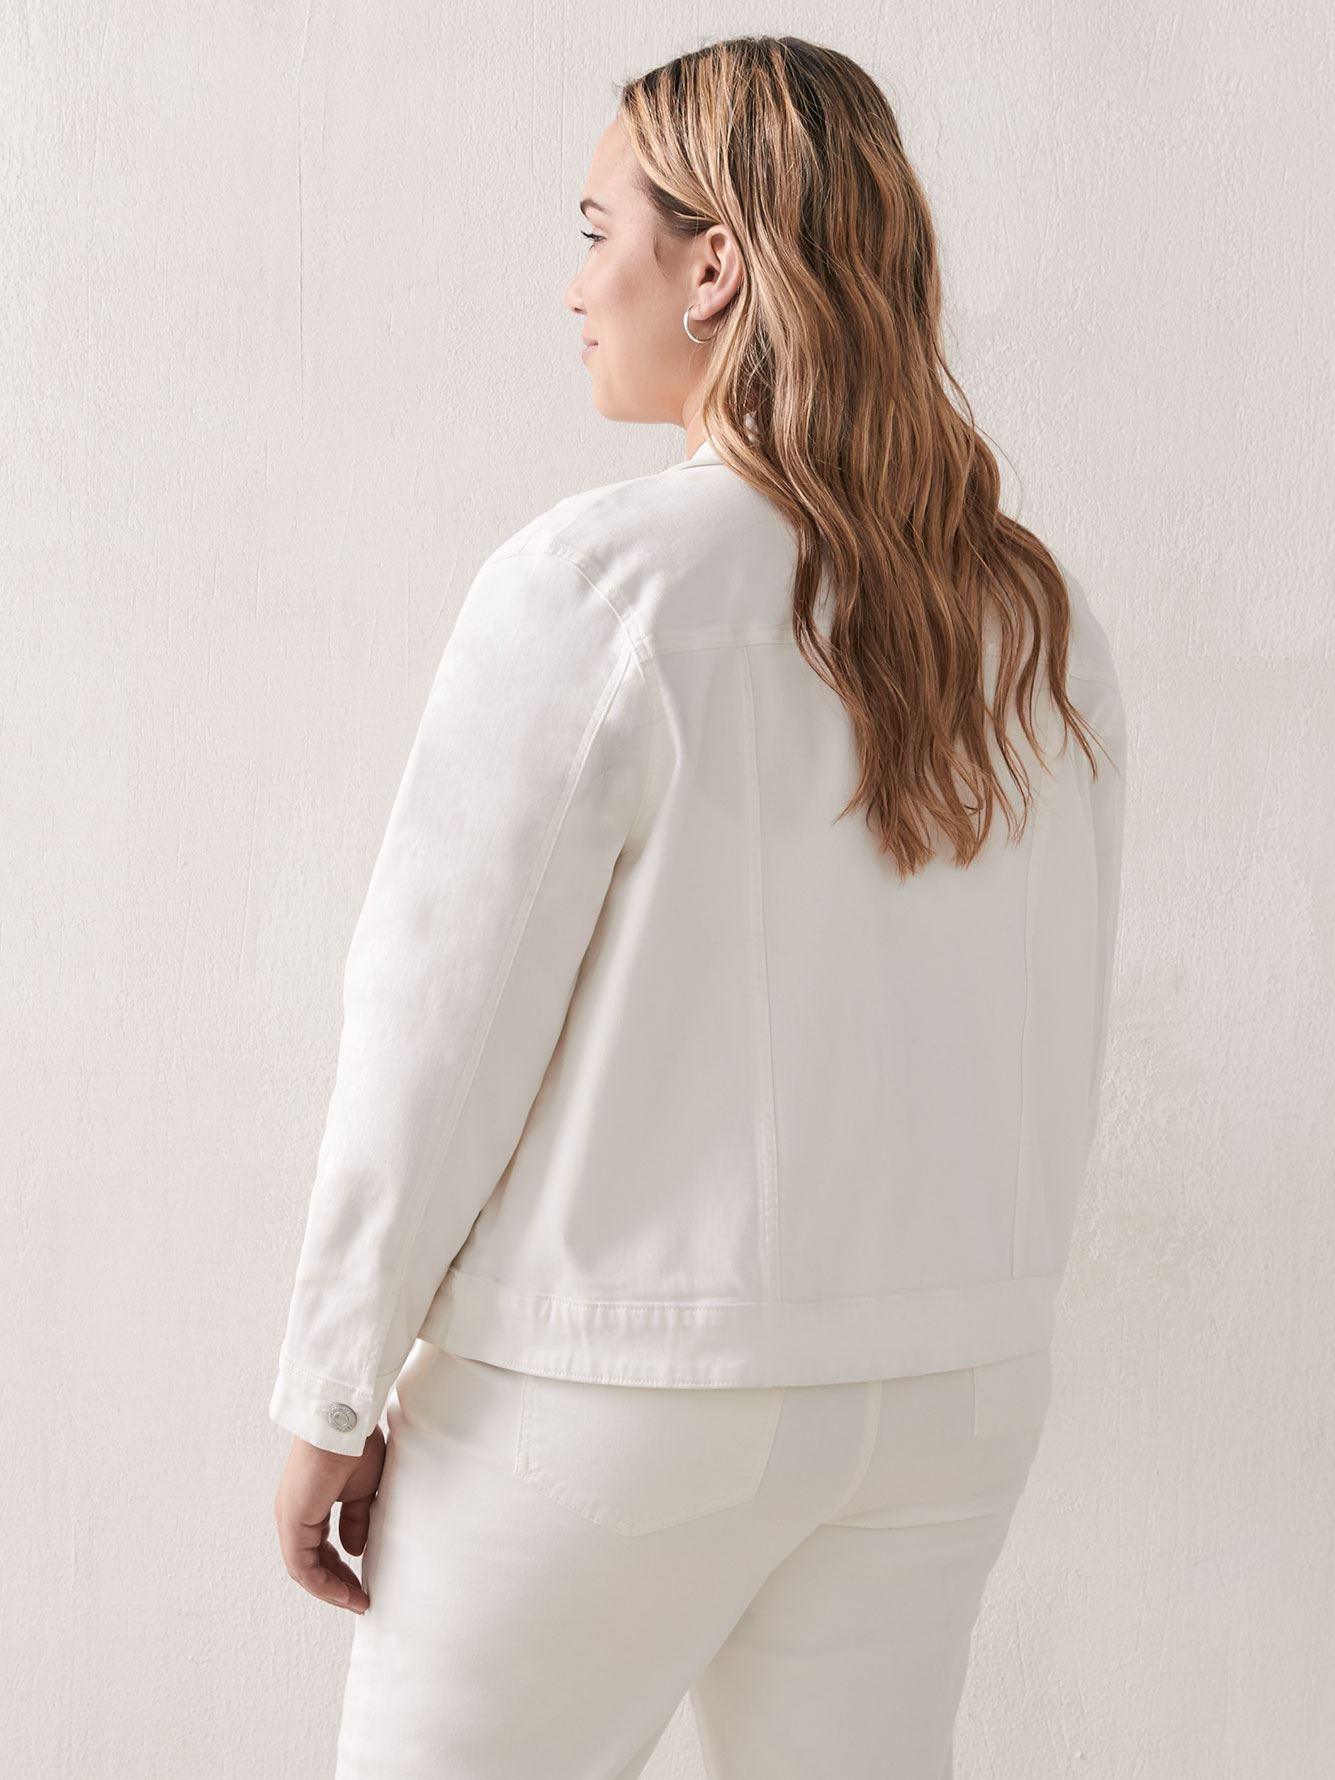 Classic White Denim Jacket - Addition Elle